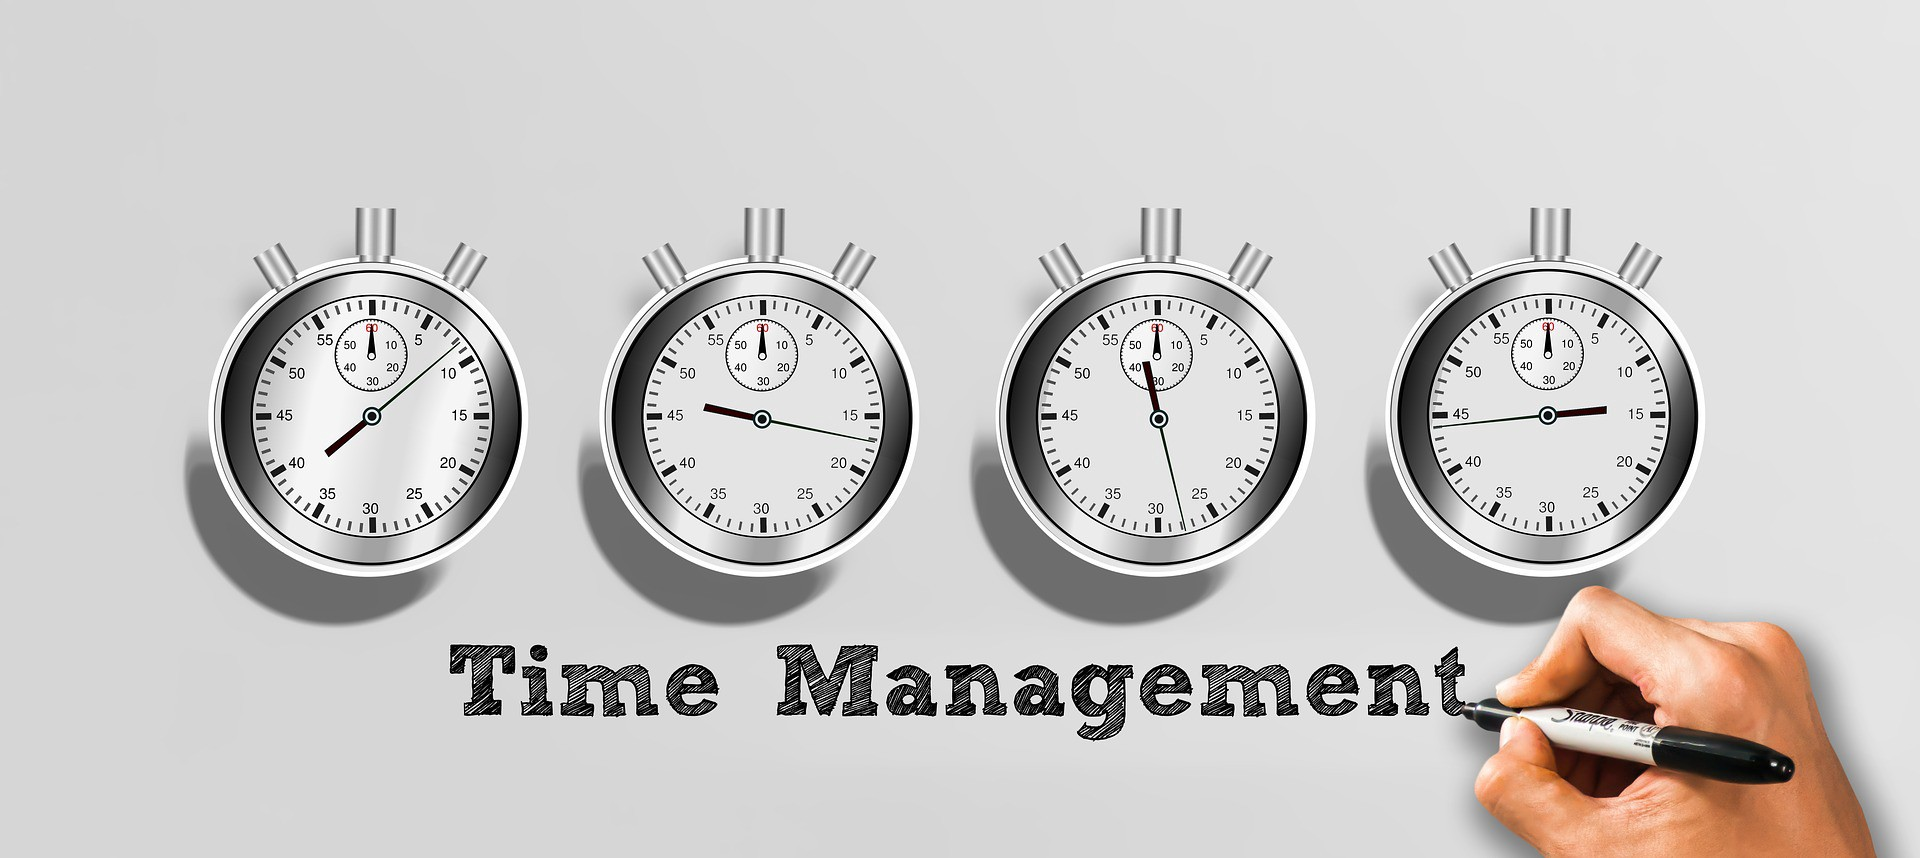 9 Super Easy Time Management Tips For Entrepreneurs To Tackle The Clock |  by ProofHub | ProofHub Blog